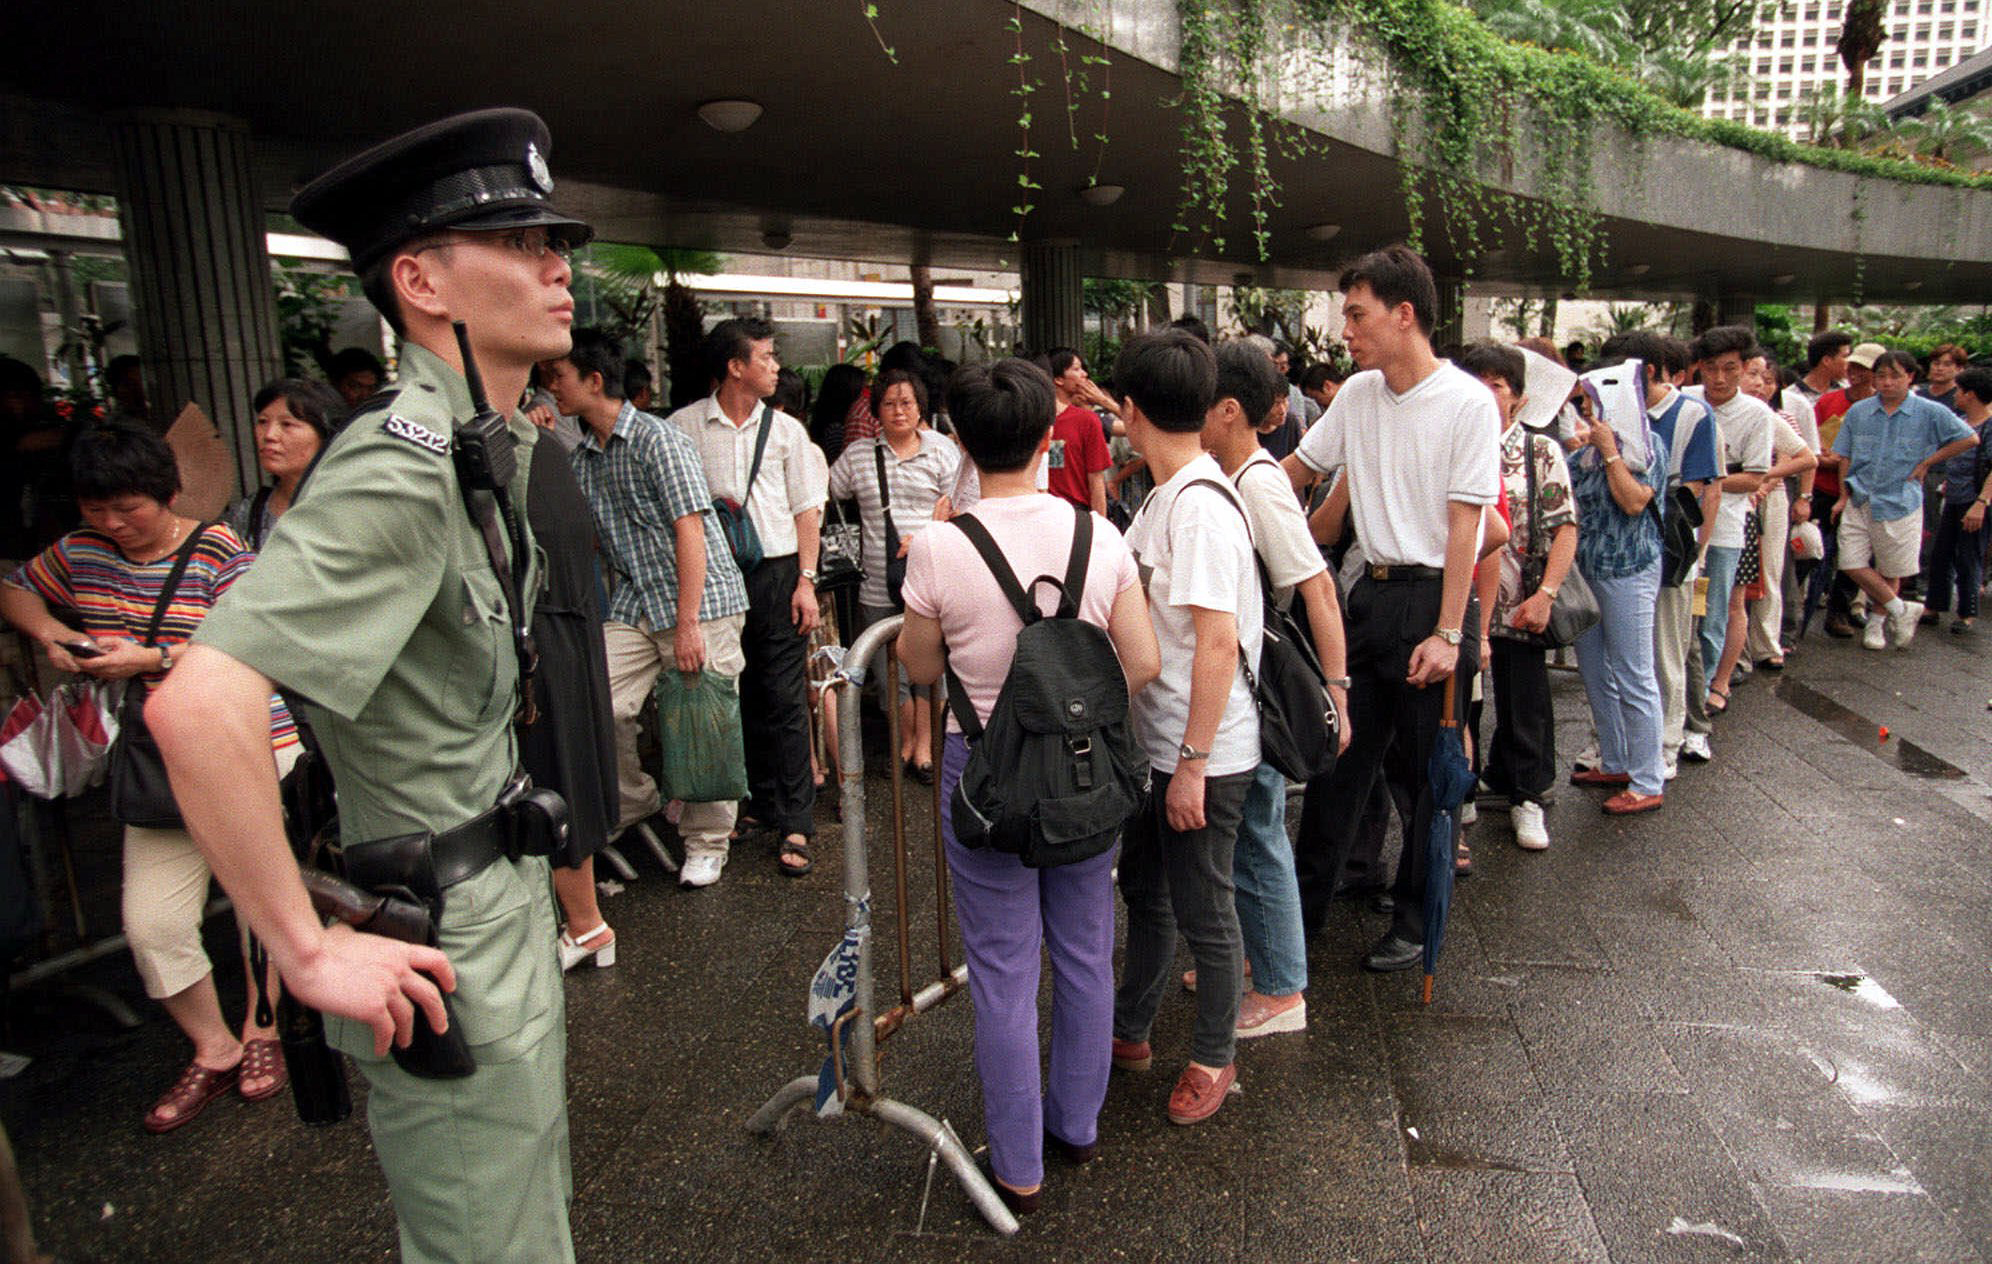 Mainland Chinese immigrants line up outside Hong Kong's Legislative Council building on July 8, 1999, to appeal for their residency rights in Hong Kong. A local judge had ruled in their favor, but fearing that it would open the floodgates and put a strain on an already overcrowded city, the Hong Kong government controversially appealed to Beijing, which overturned the ruling and prompted early fears that Hong Kong's judicial independence was under threat.